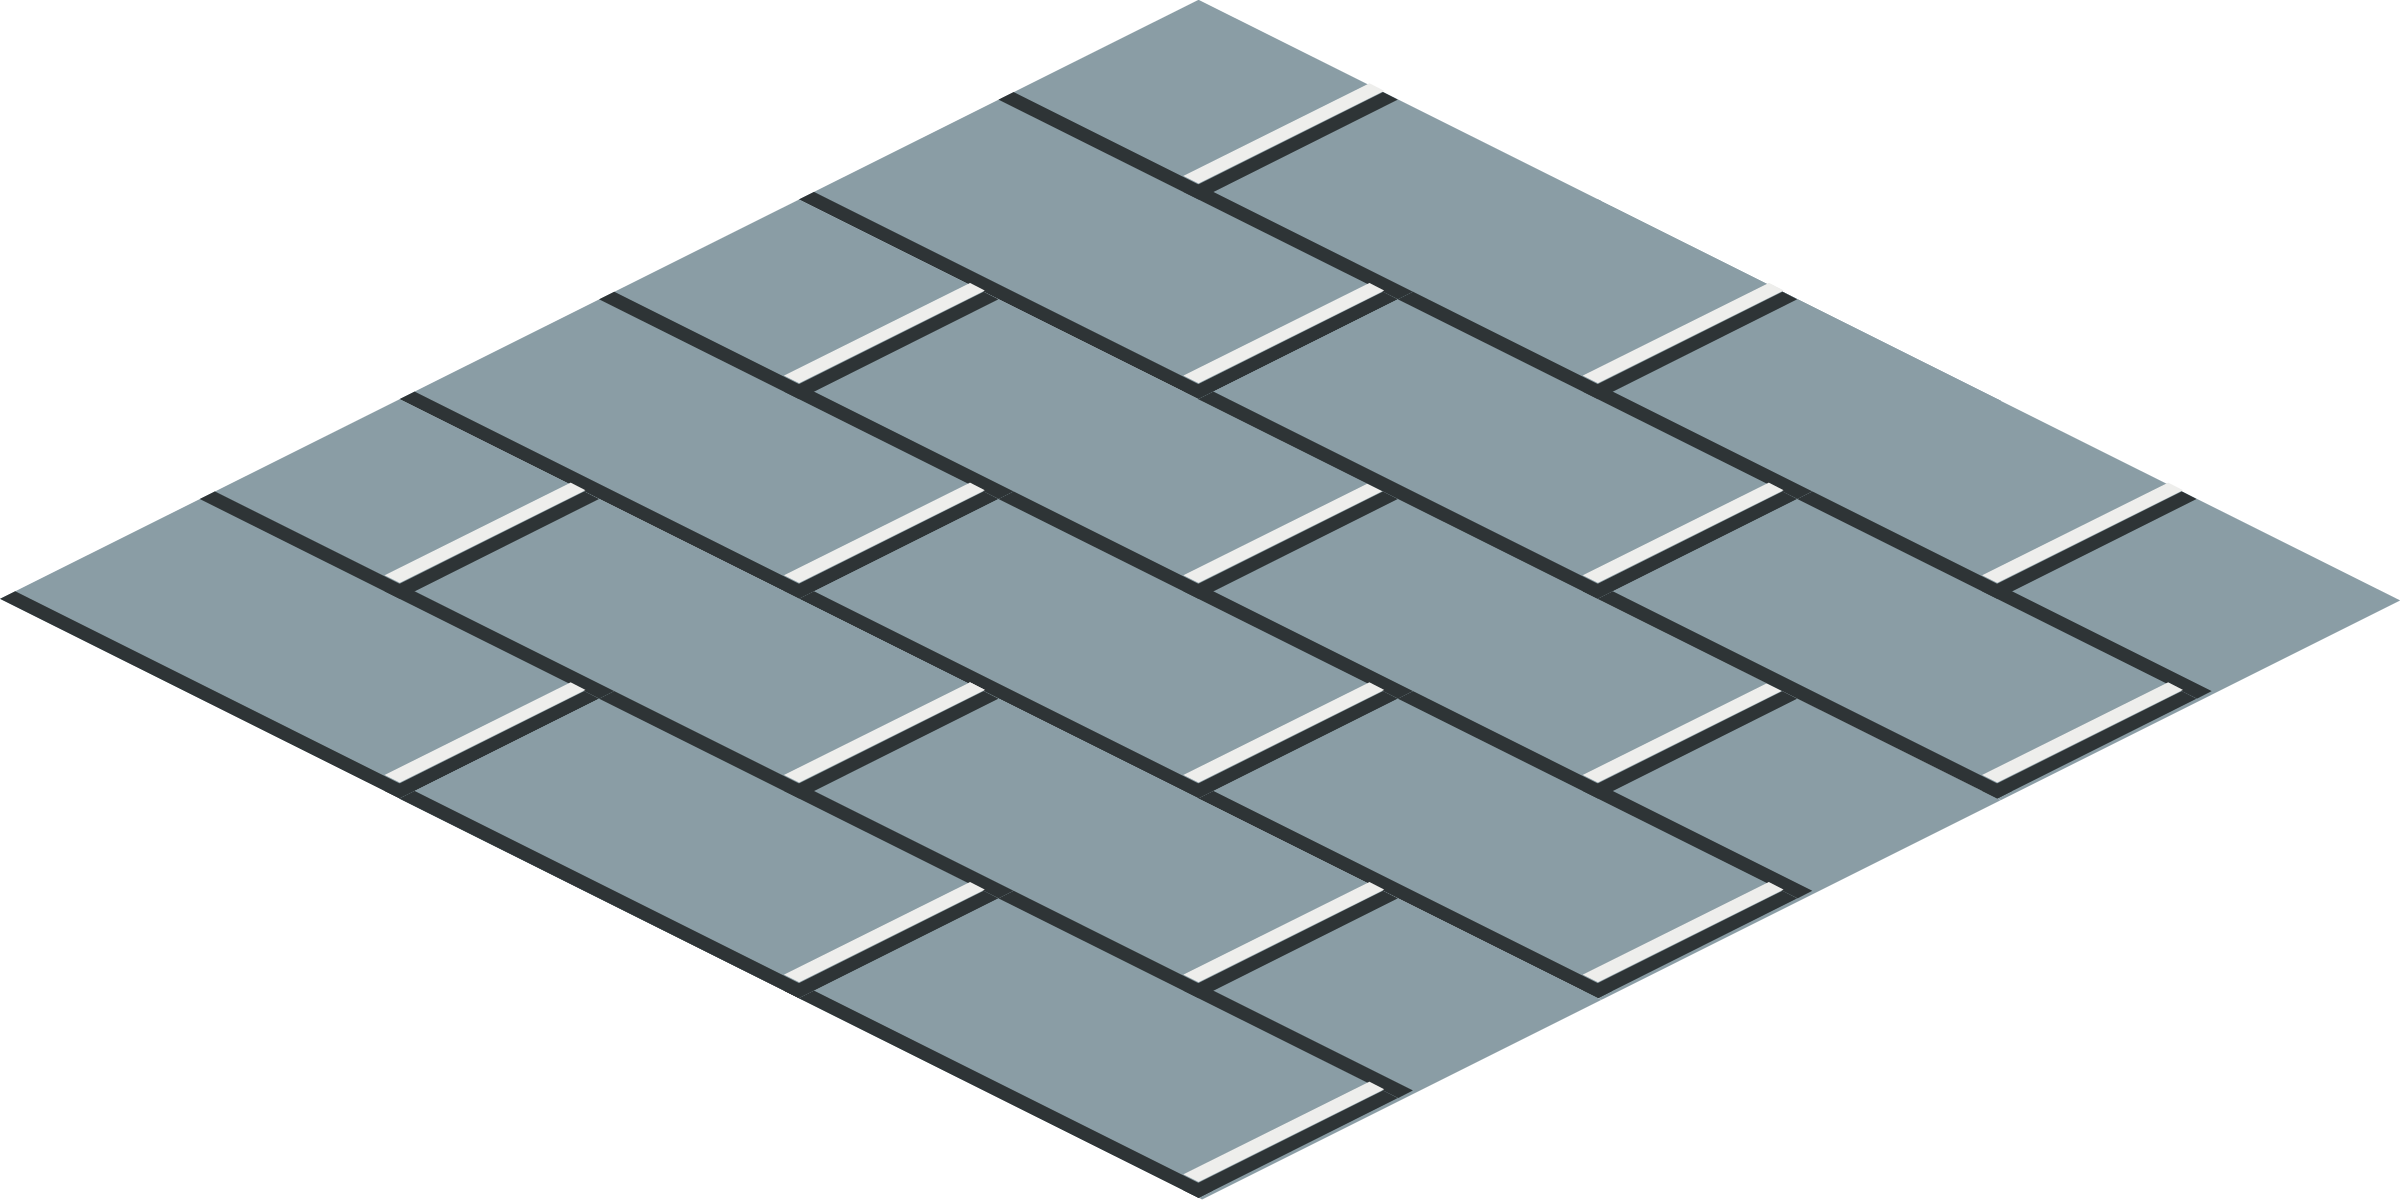 isometric floor tile 5 by rg1024